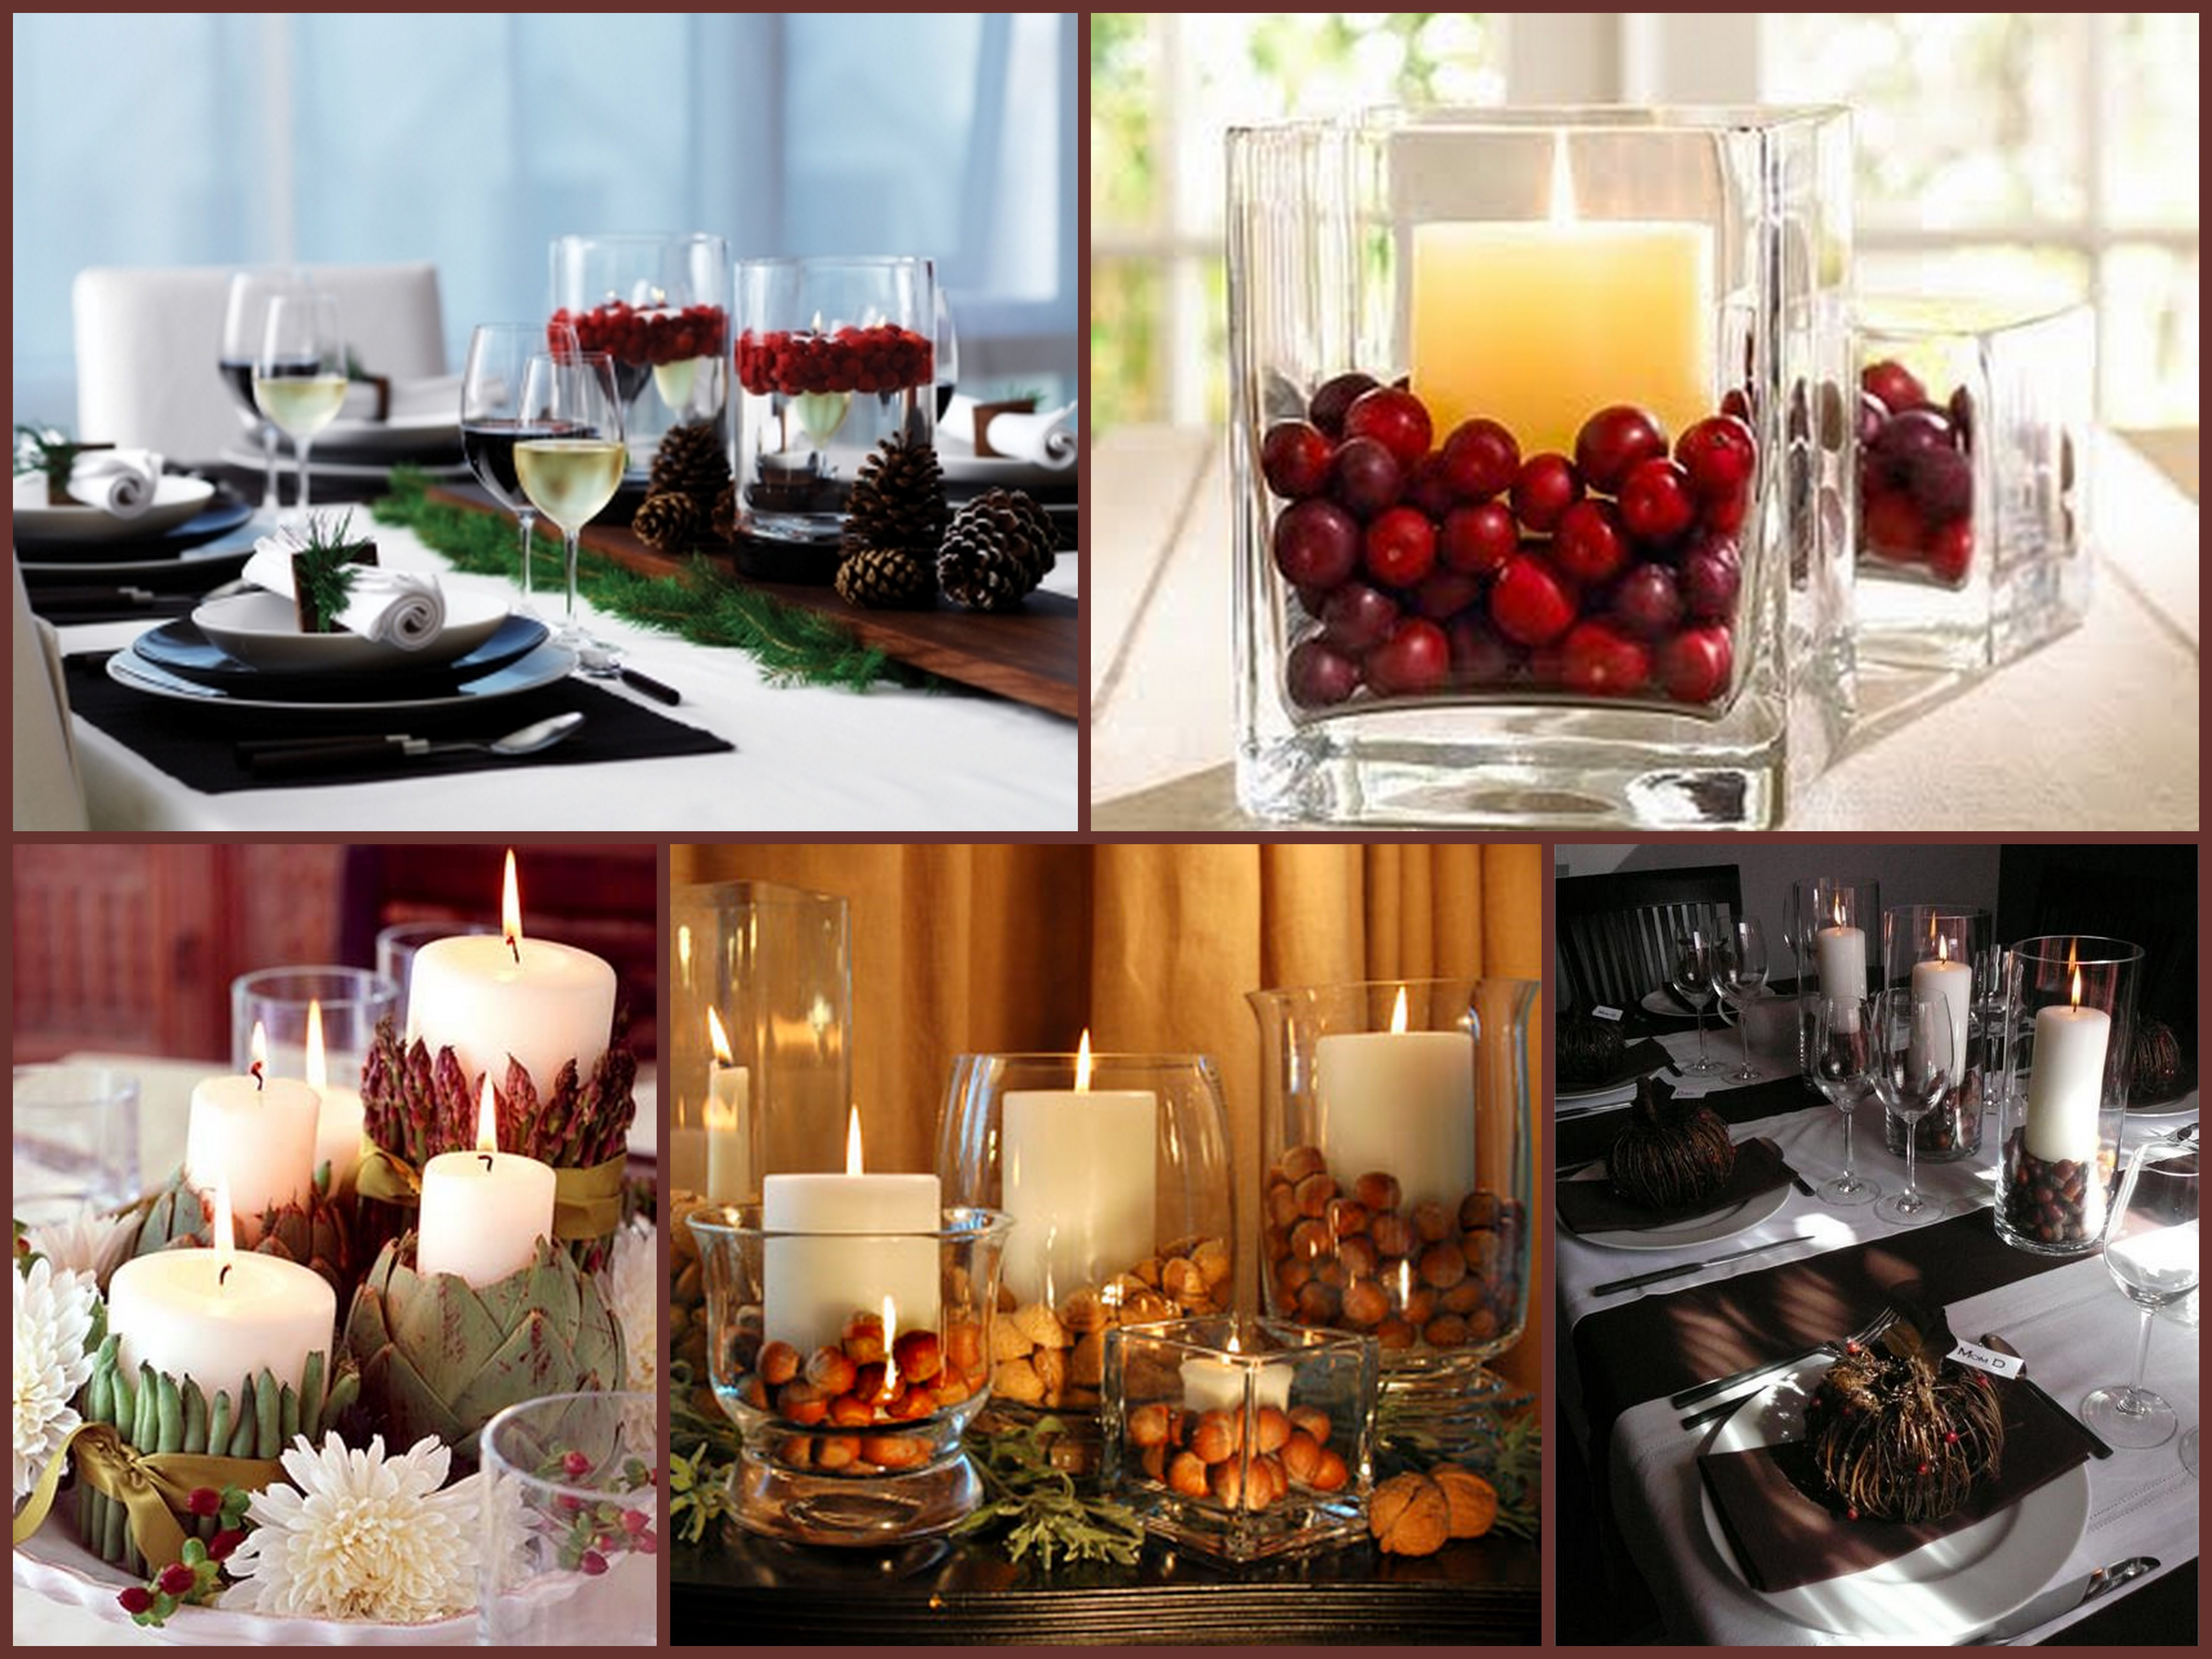 Thanksgiving Table Decor Ideas  Last Minute Holiday Centerpiece – A S D INTERIORS BLOG